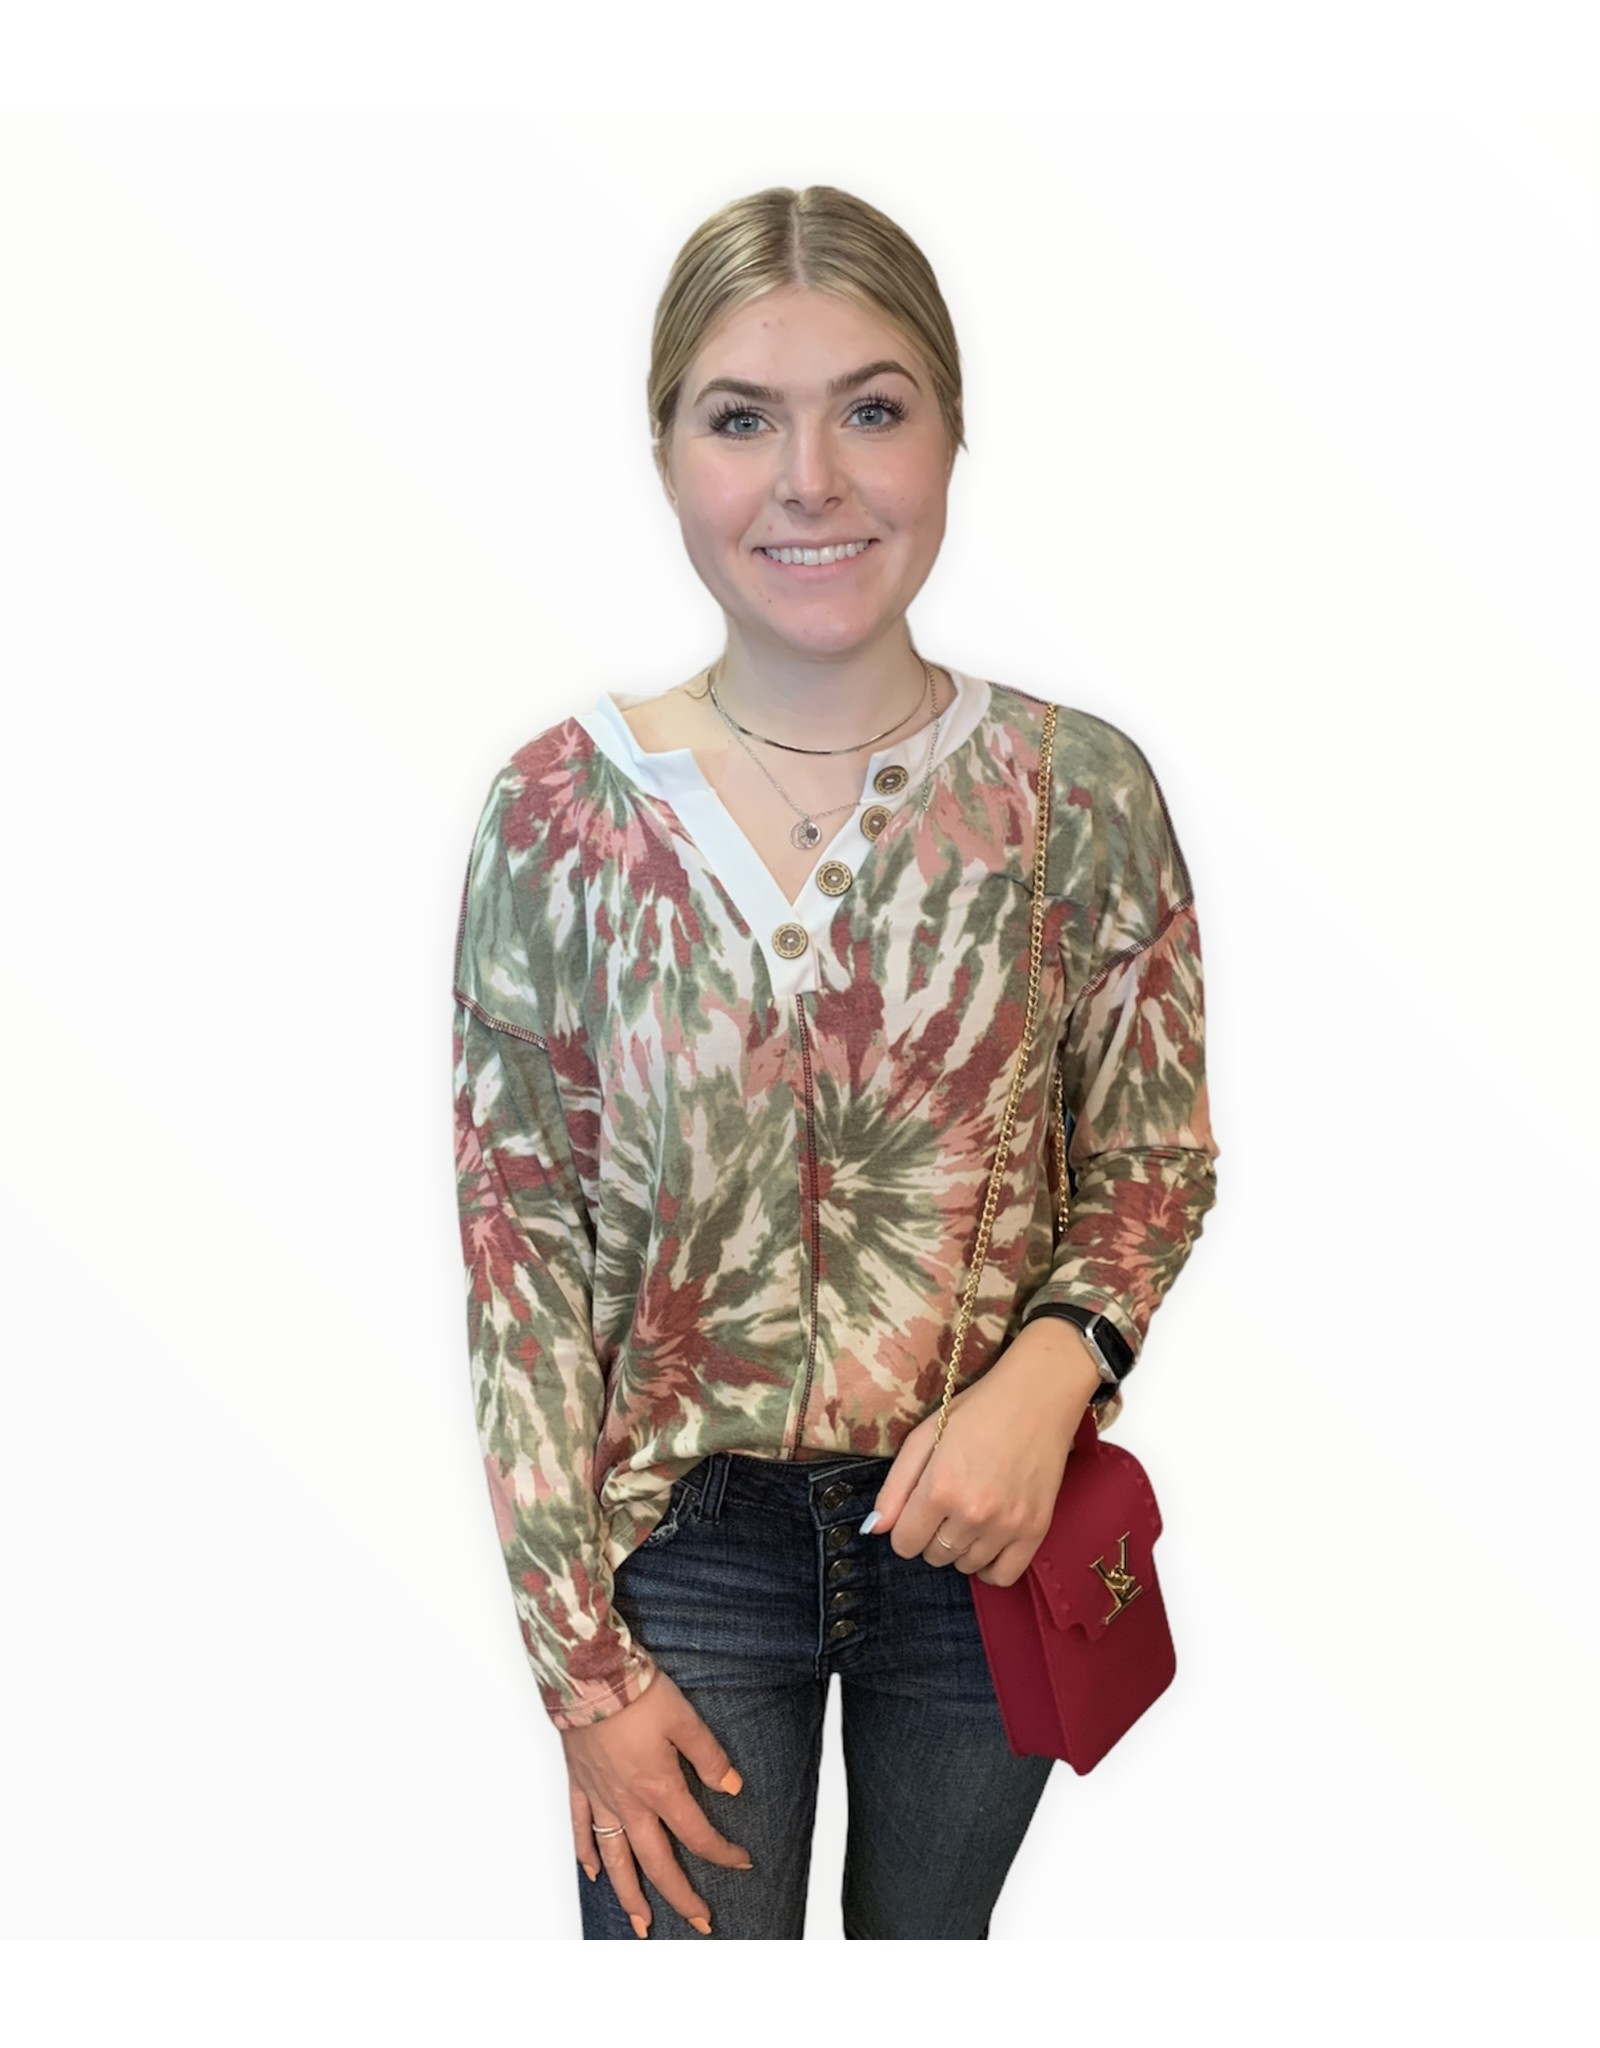 LATA Magical Memories Tie Dye French Terry Knit